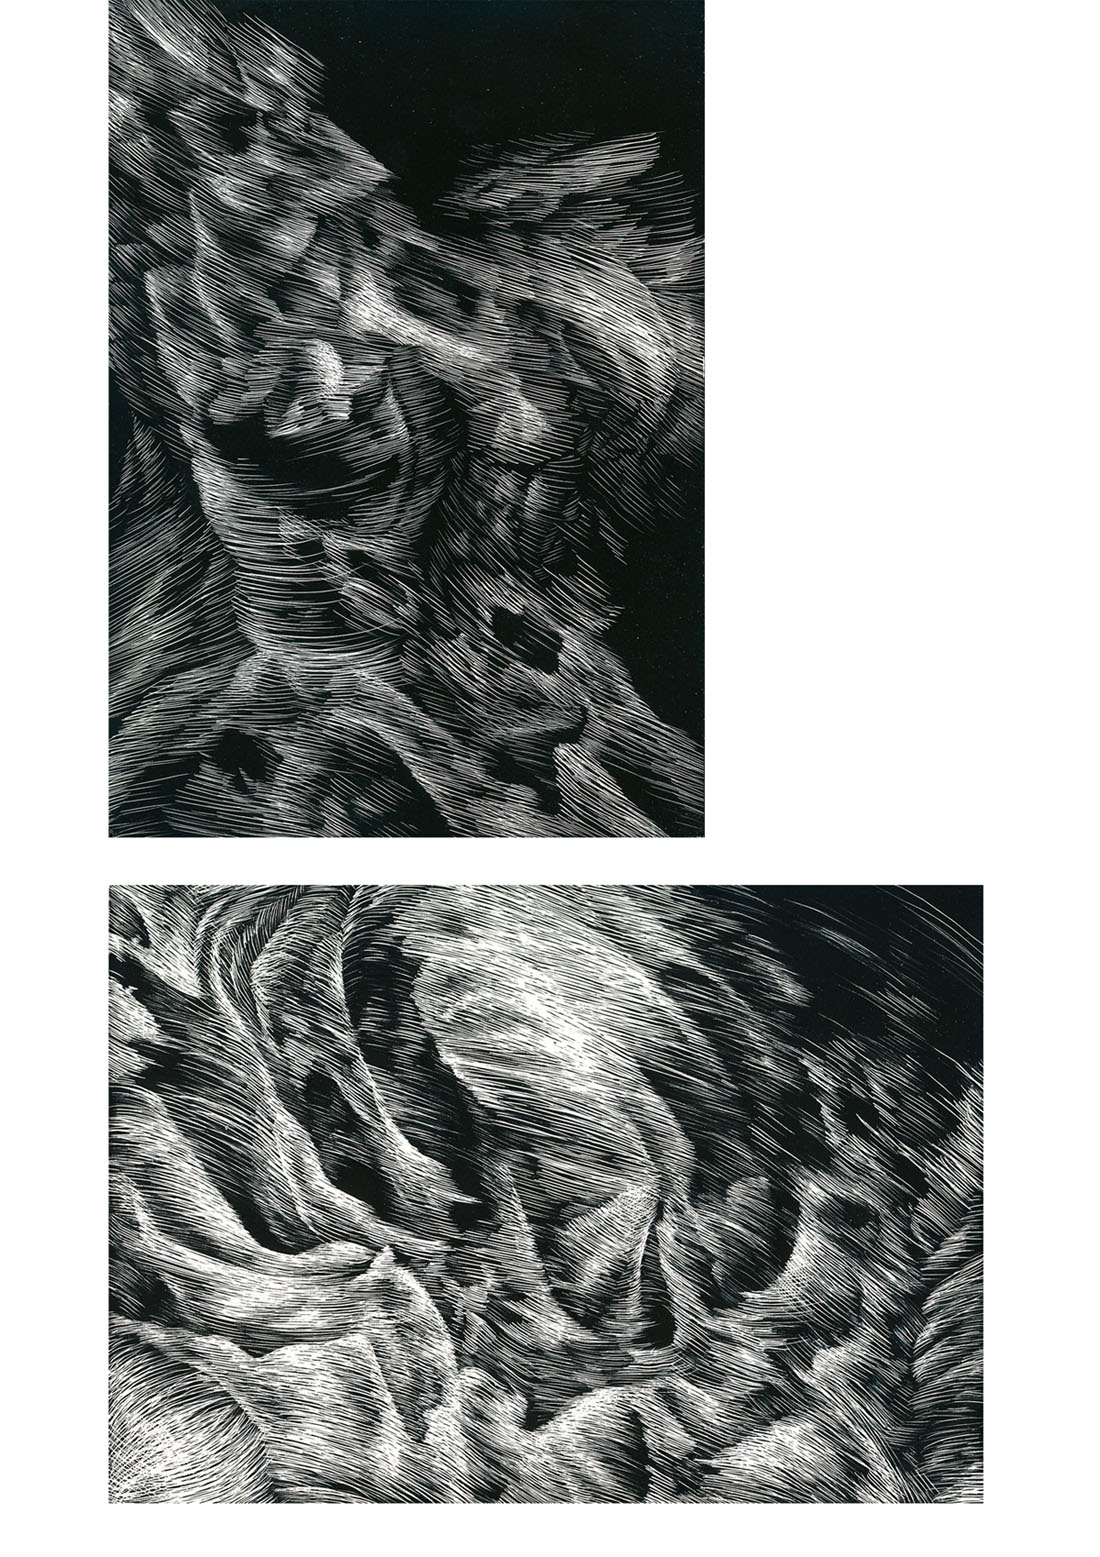 Skeleton, scratchboard, 2 panels (13cm  x 17.5cm each), 2011